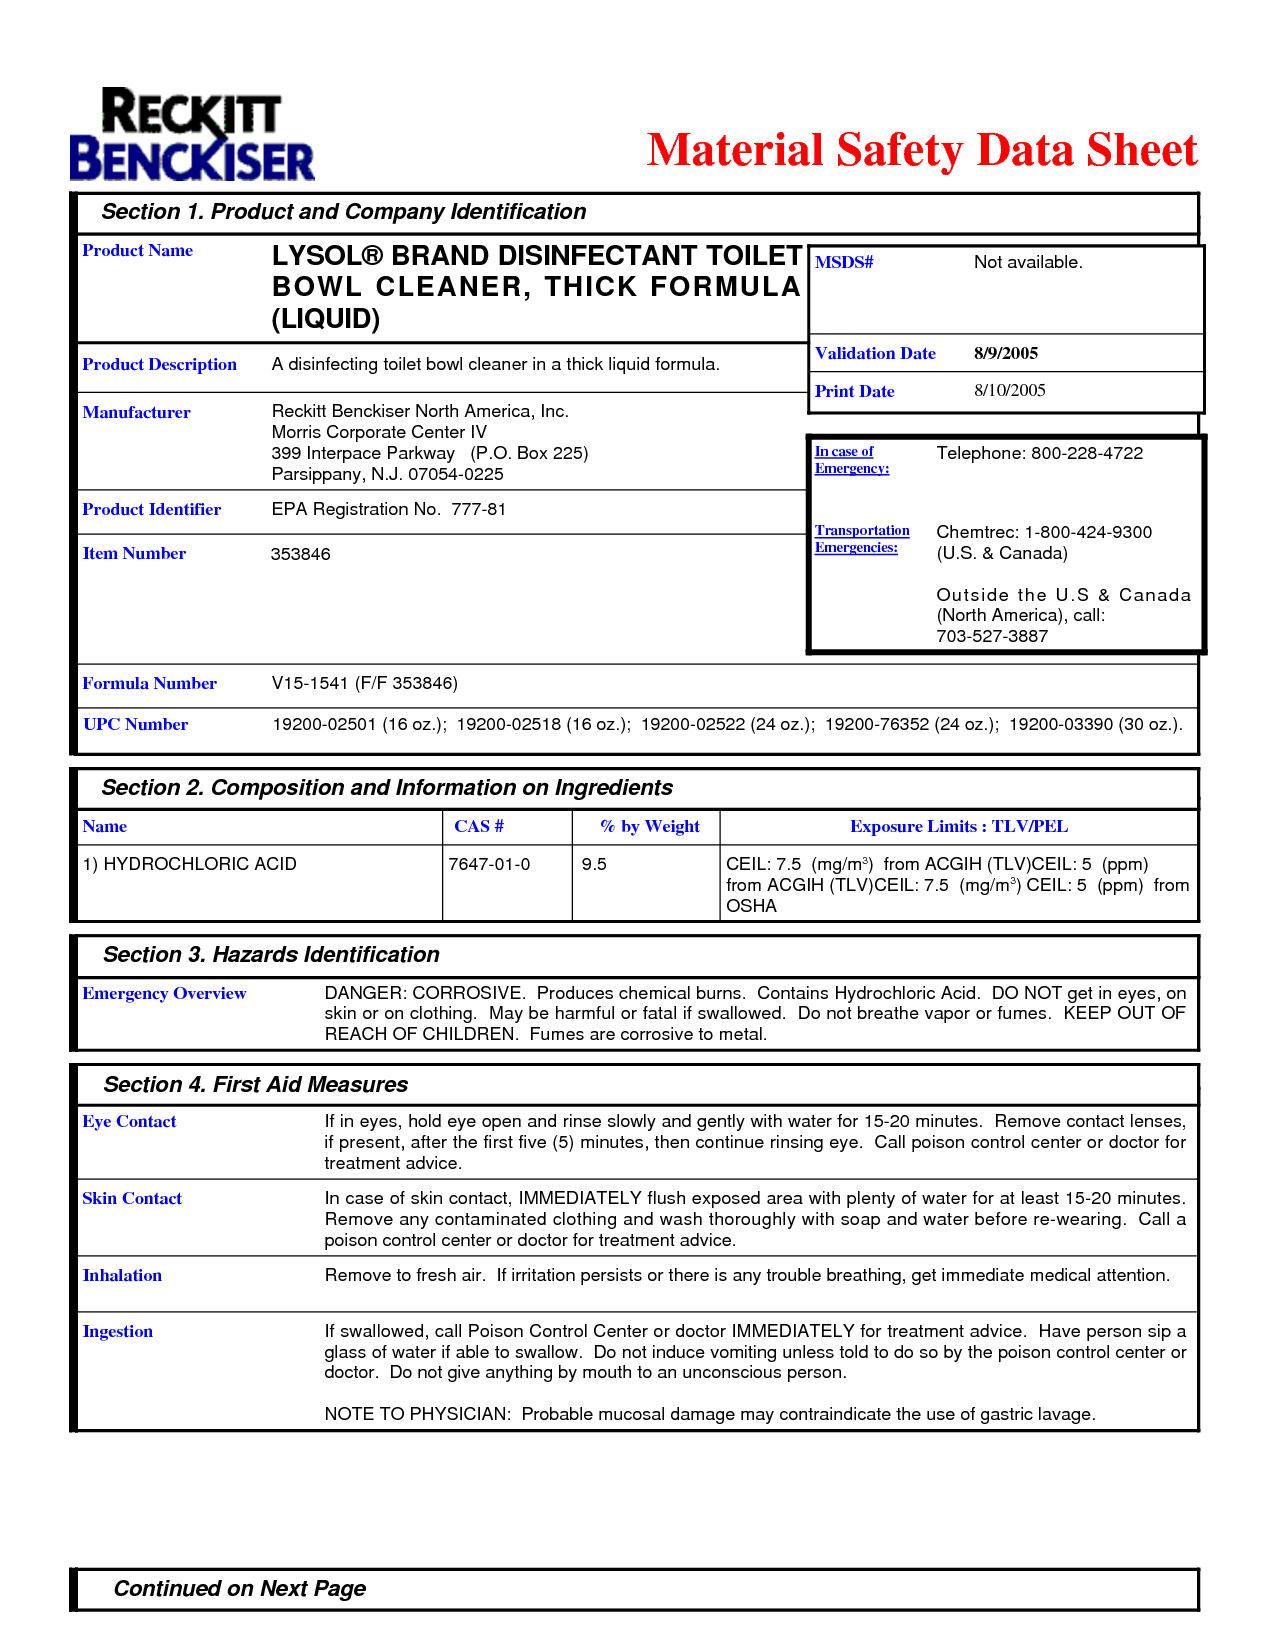 Lysol Kitchen Cleaner MSDS Sheet